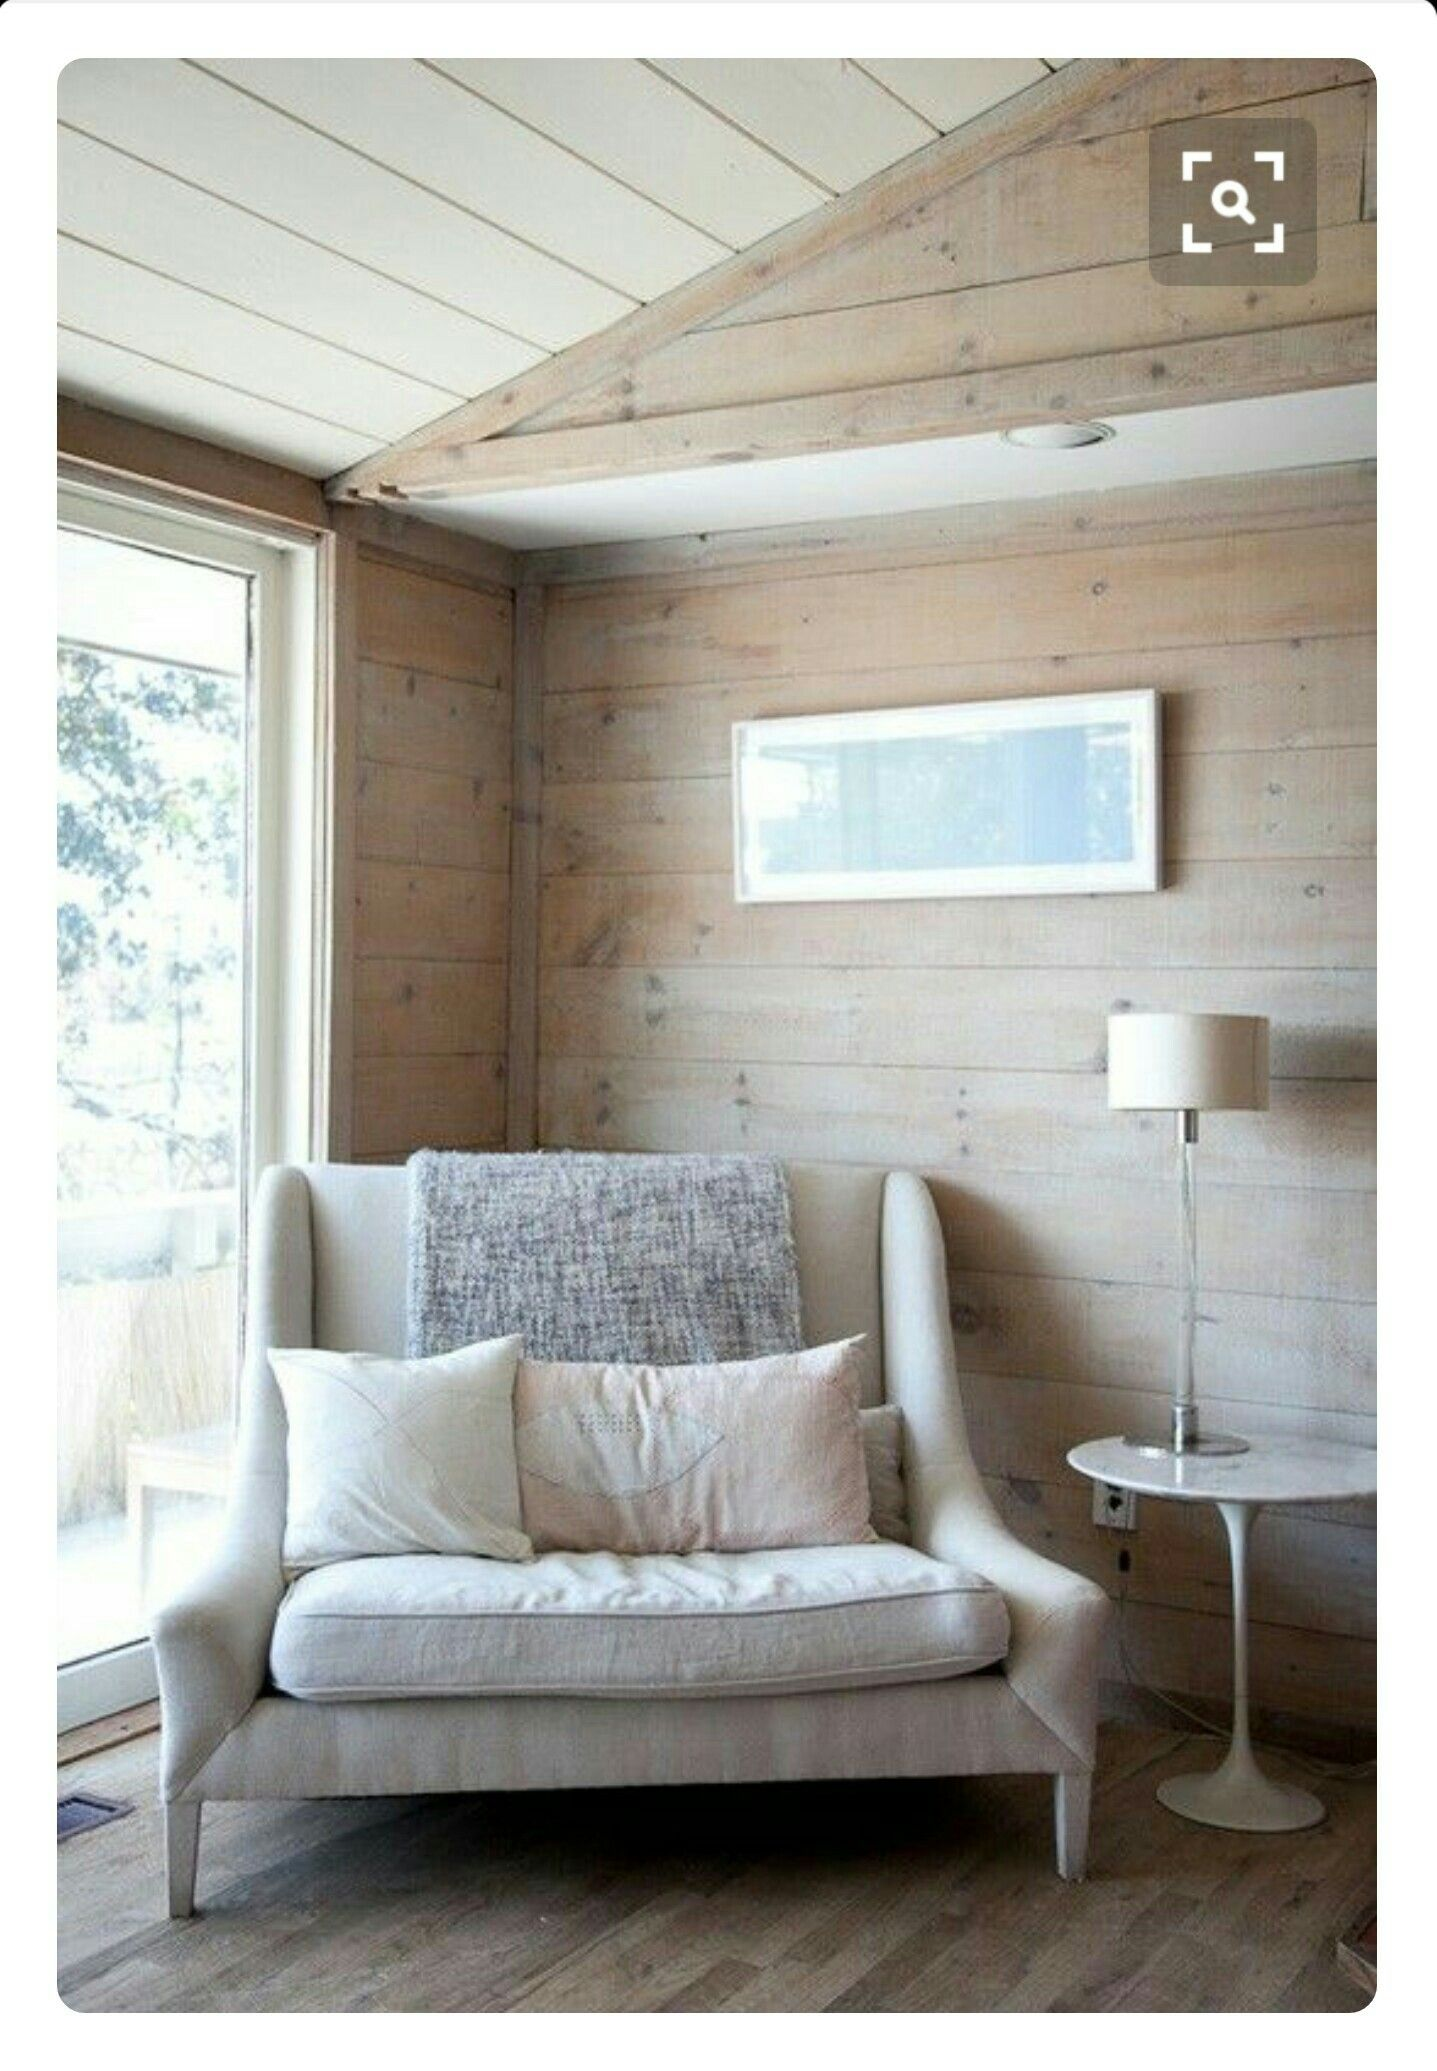 Tempting Discover Ideas About Reading Chair Pin By Leah Mawby On Pinterest Bedroom Ikea Reading Chairs Bedroom Reading Chairs furniture Reading Chairs For Bedroom